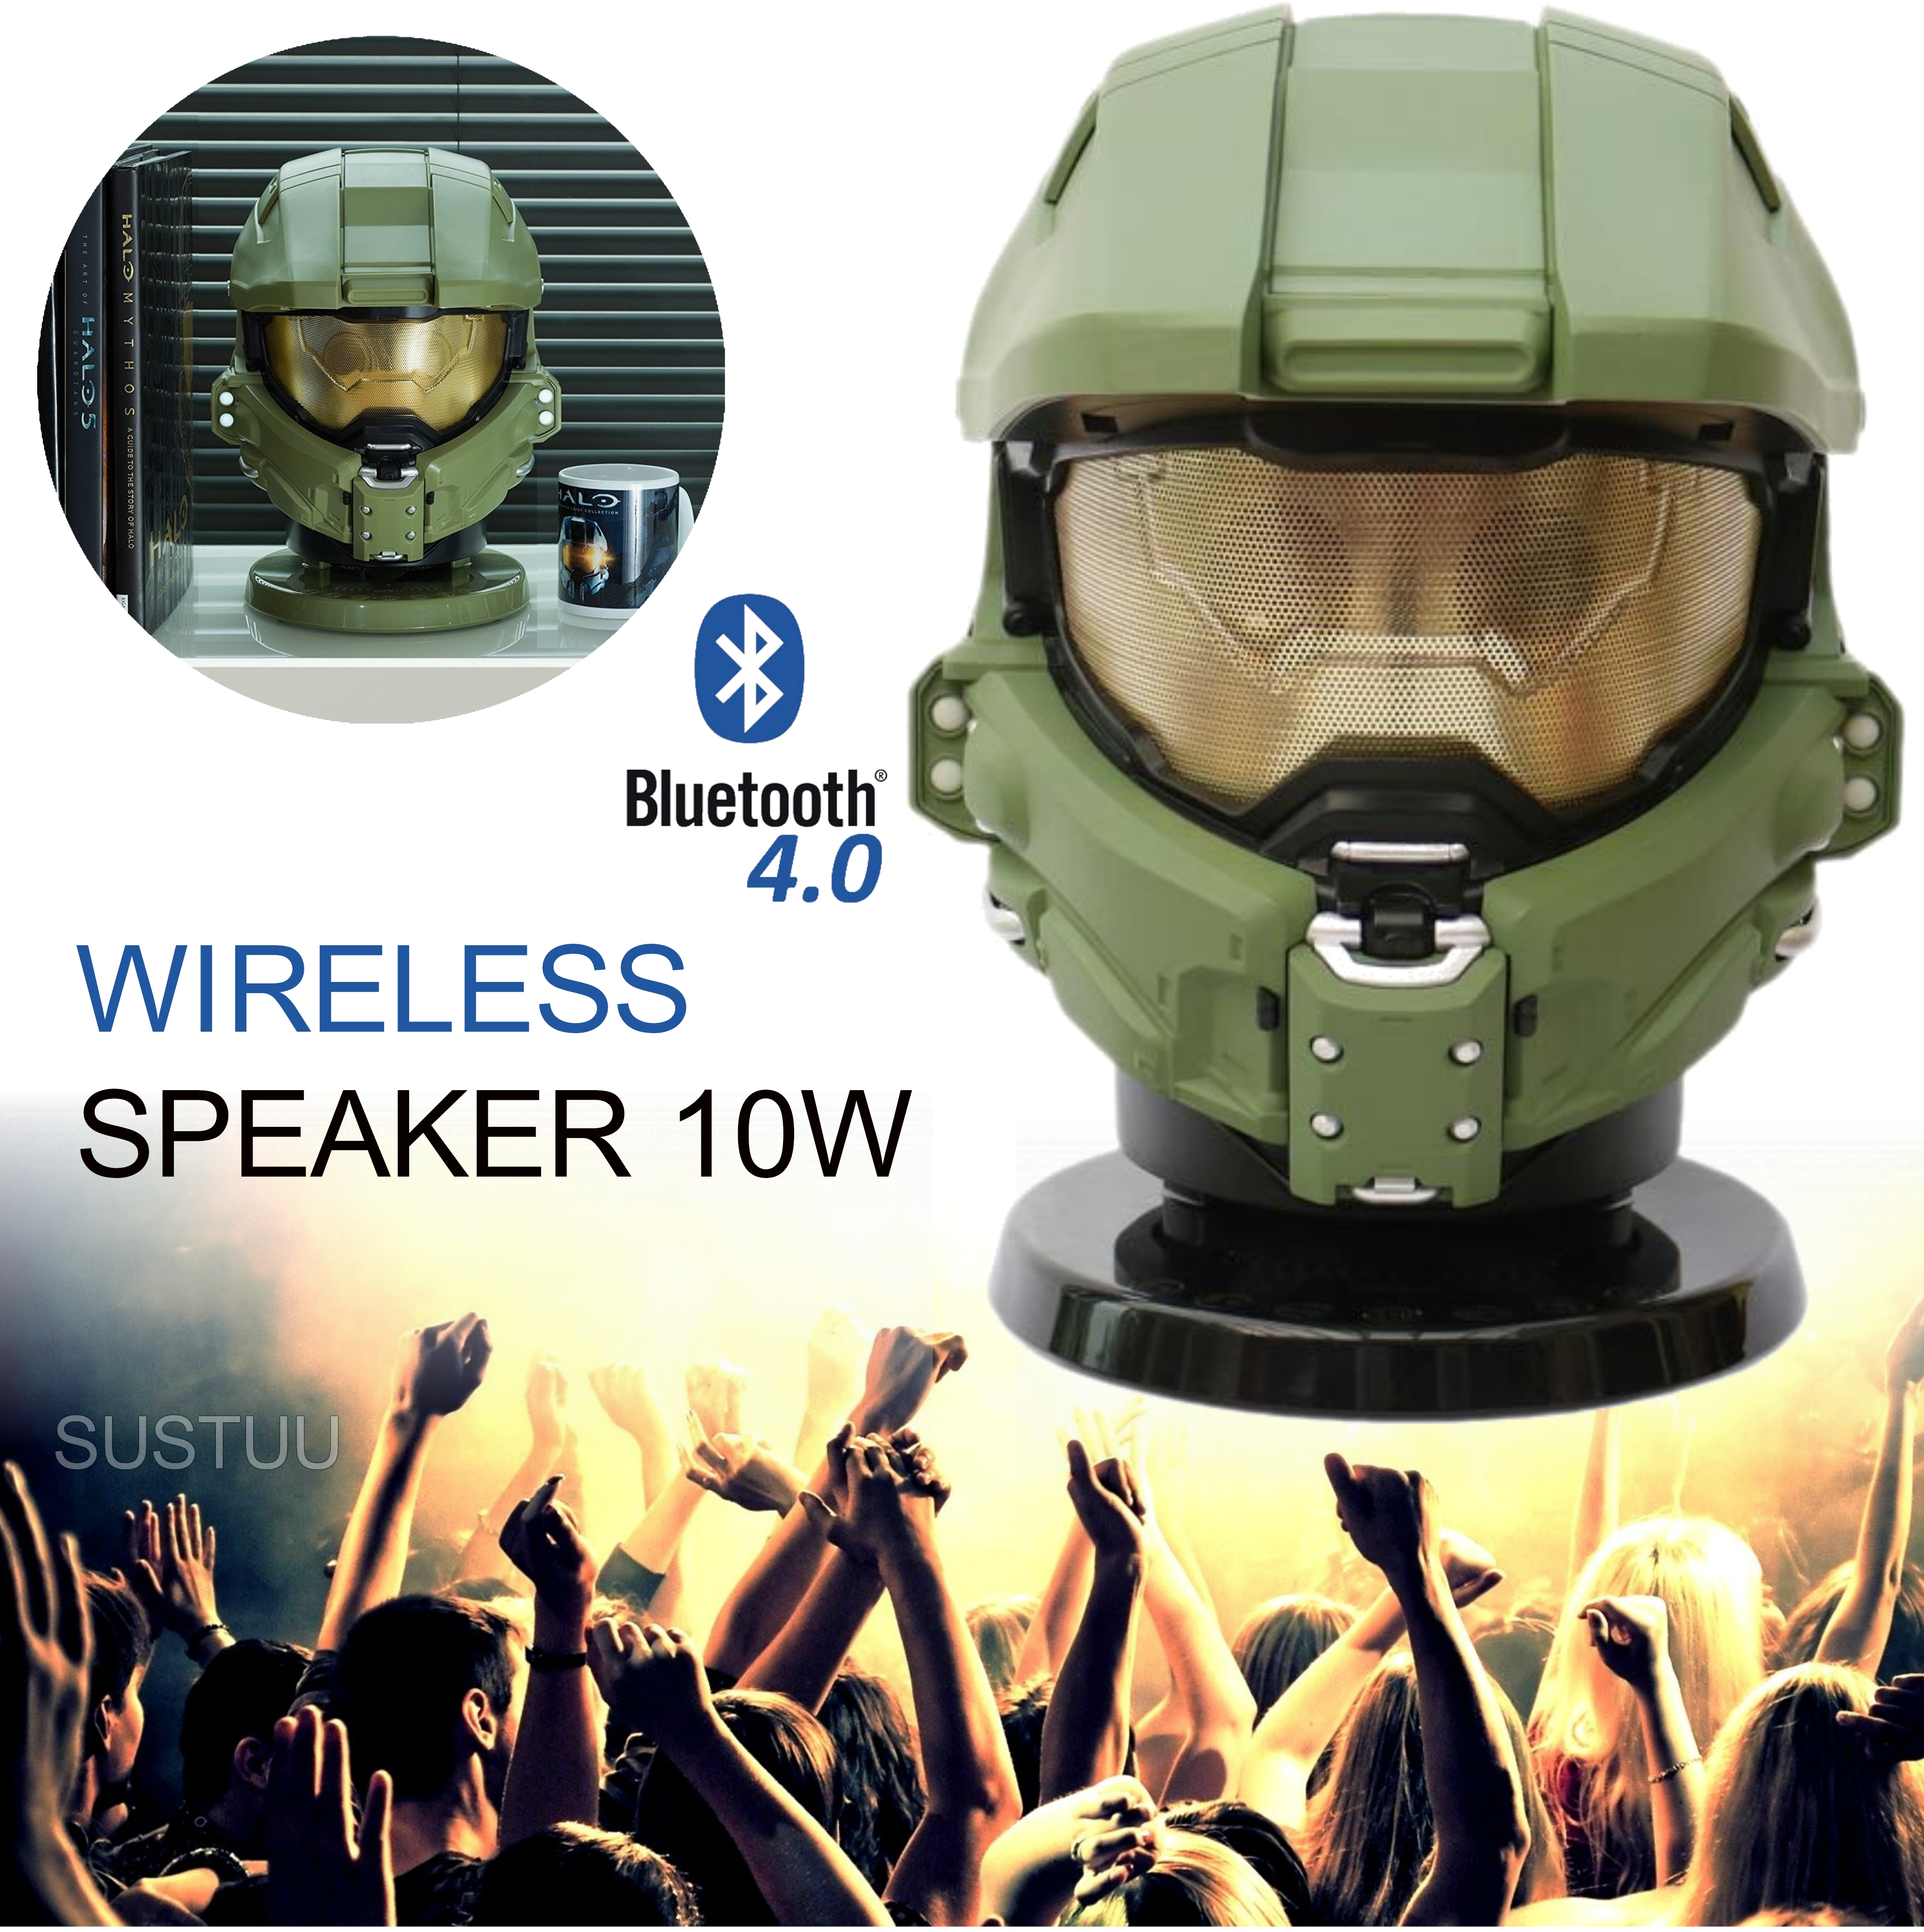 Halo Master Chief Bluetooth Wireless Speaker|Portable Media Player|10W Subwoofer